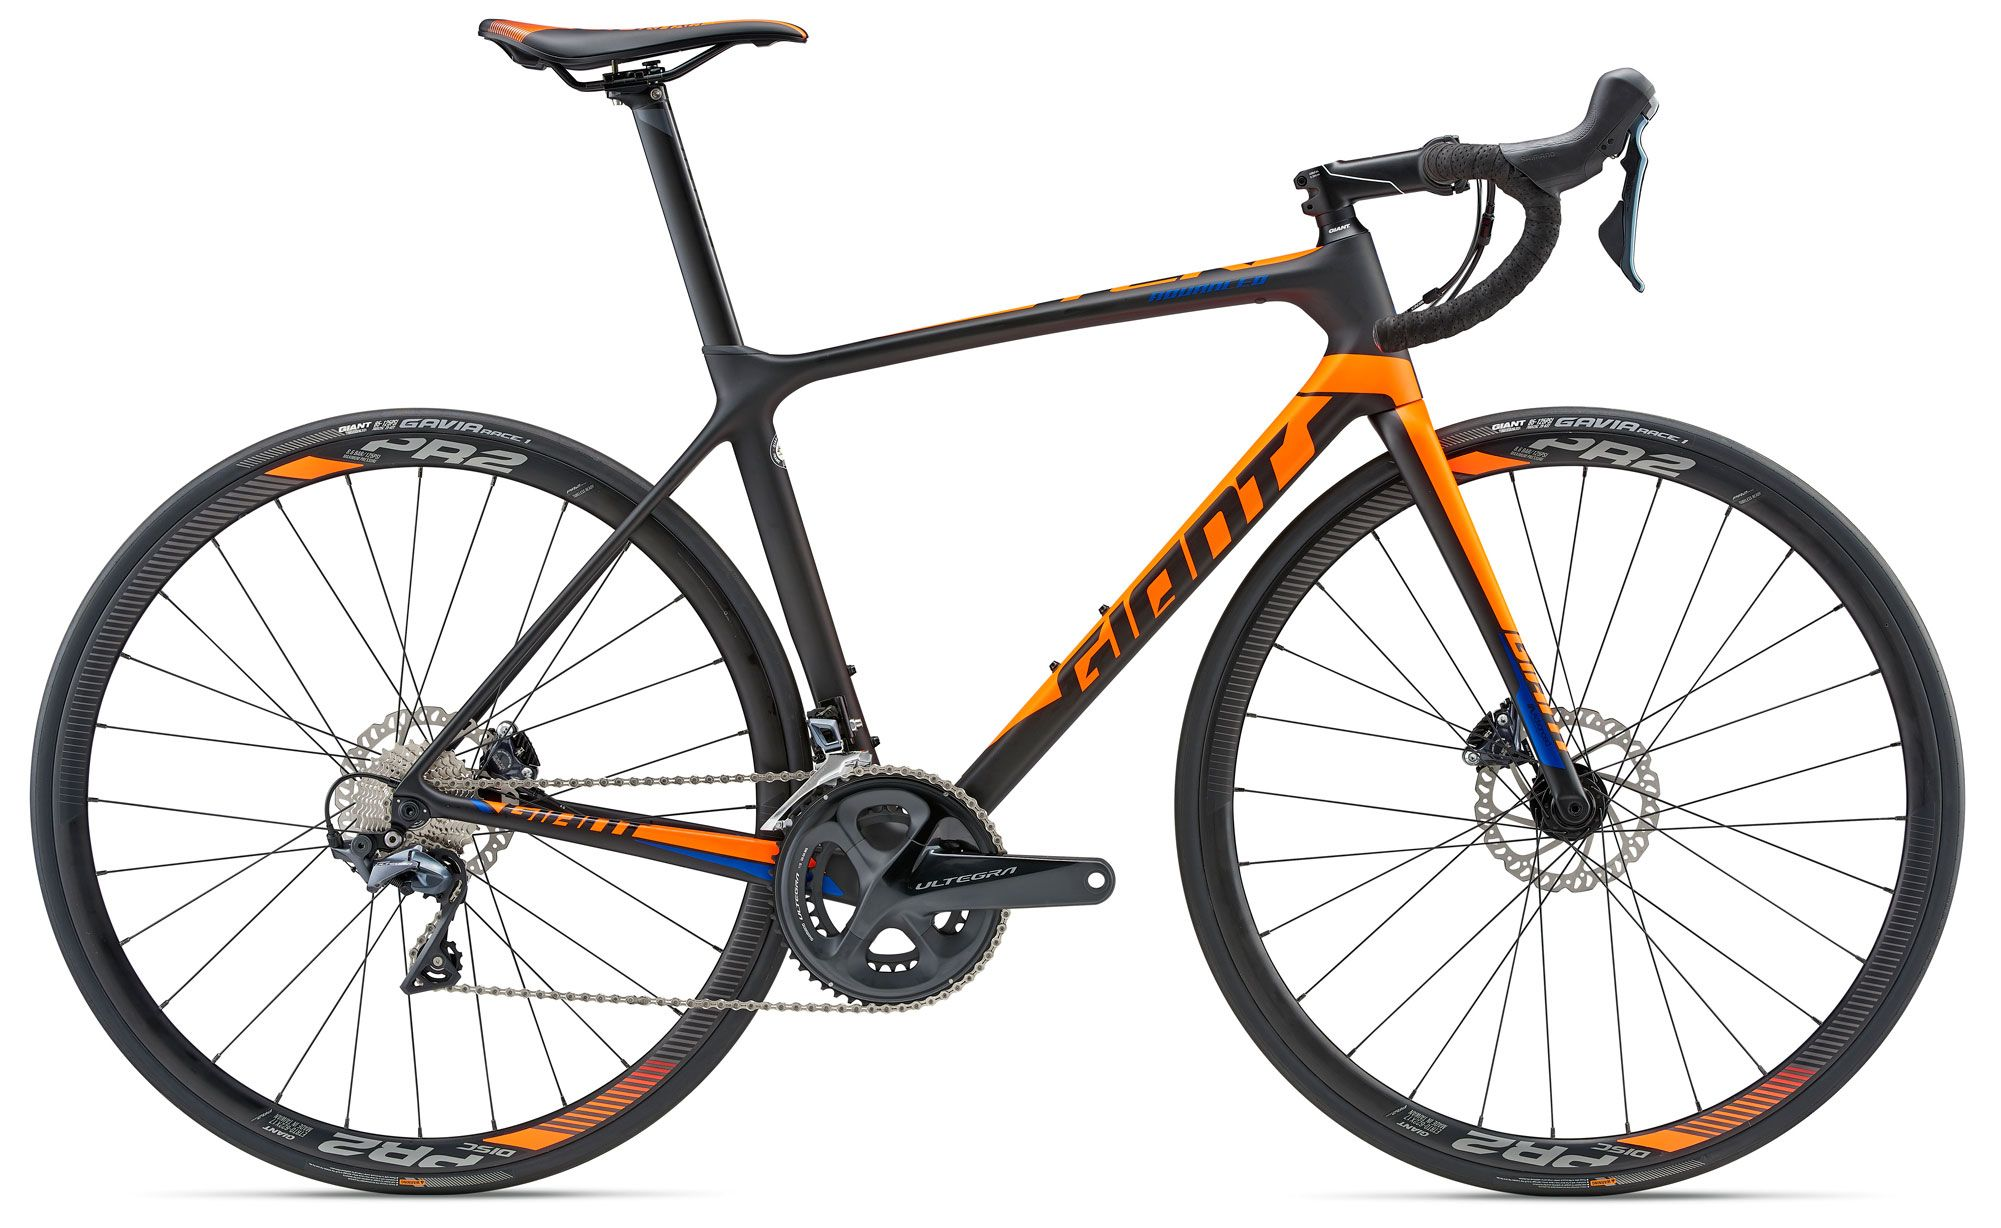 Велосипед Giant TCR Advanced 1 Disc 2018 велосипед giant tcr composite 2 compact 2014